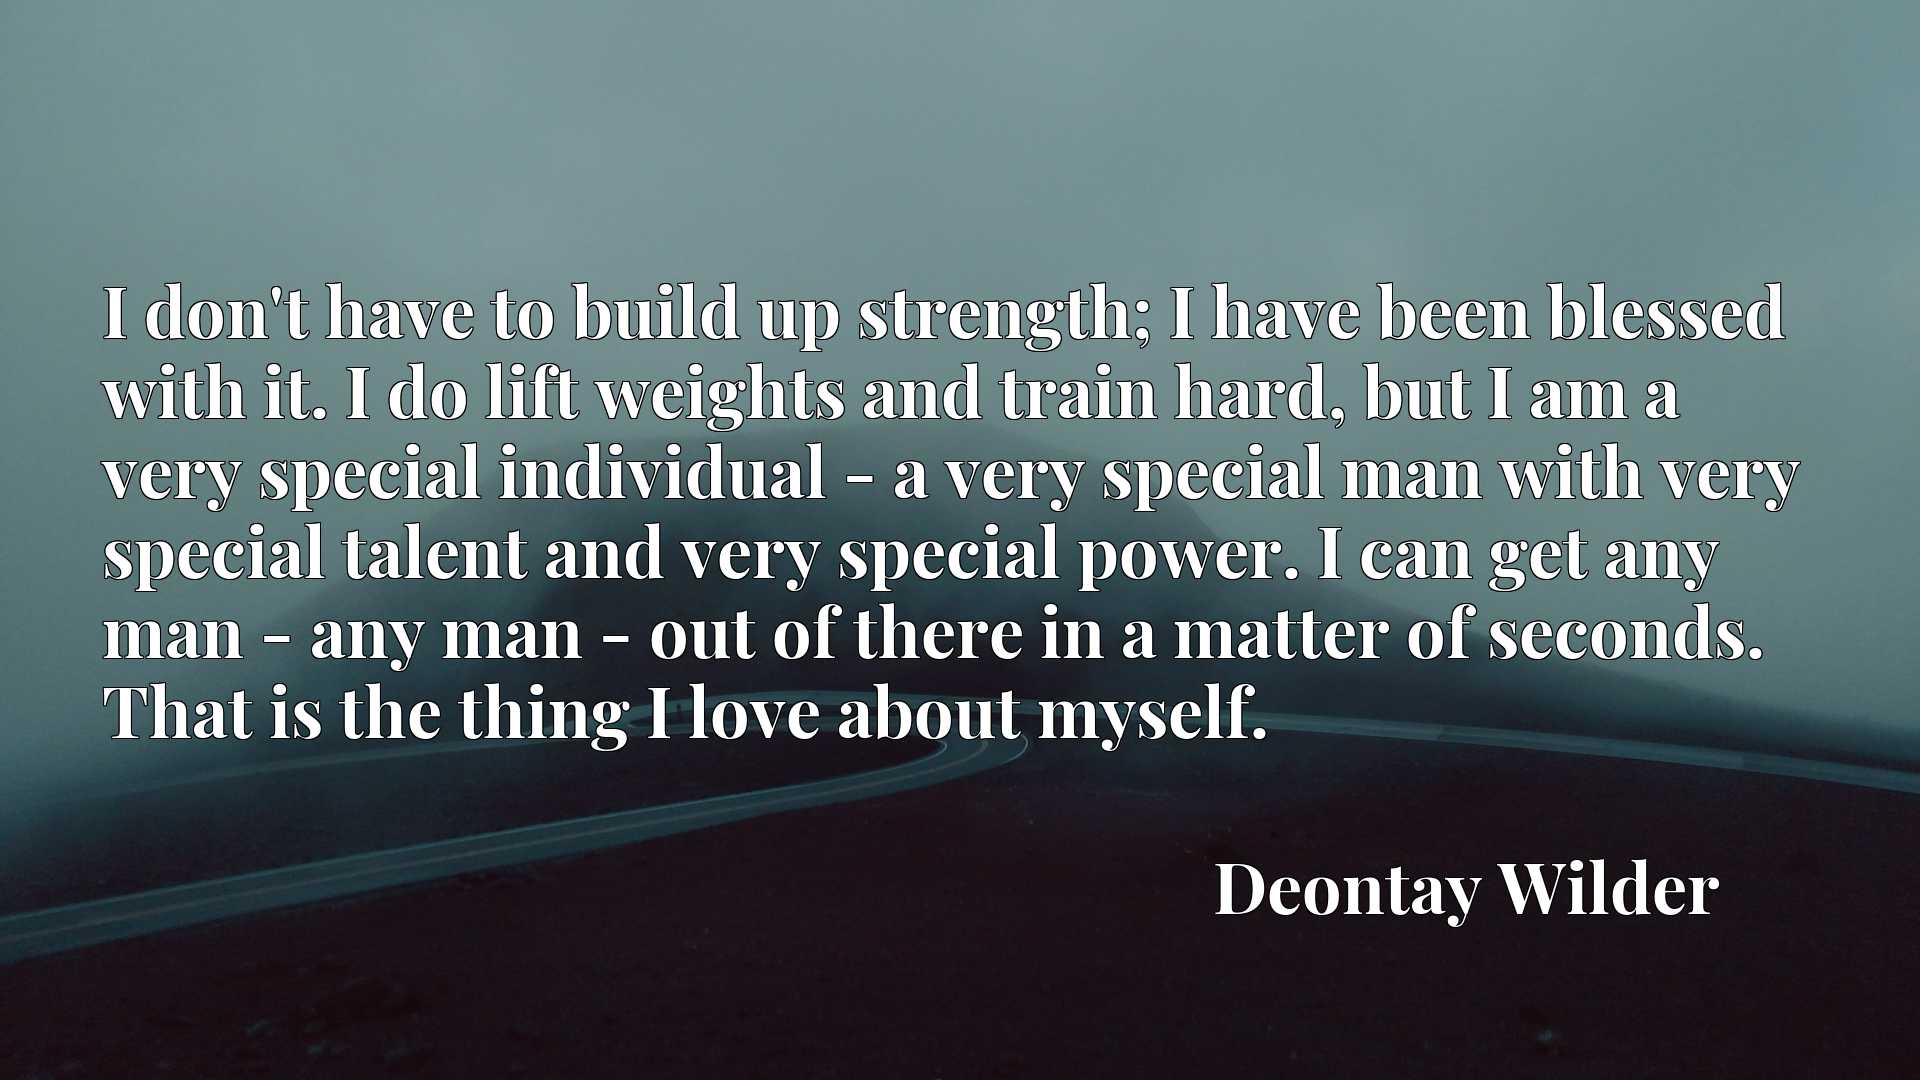 I don't have to build up strength; I have been blessed with it. I do lift weights and train hard, but I am a very special individual - a very special man with very special talent and very special power. I can get any man - any man - out of there in a matter of seconds. That is the thing I love about myself.